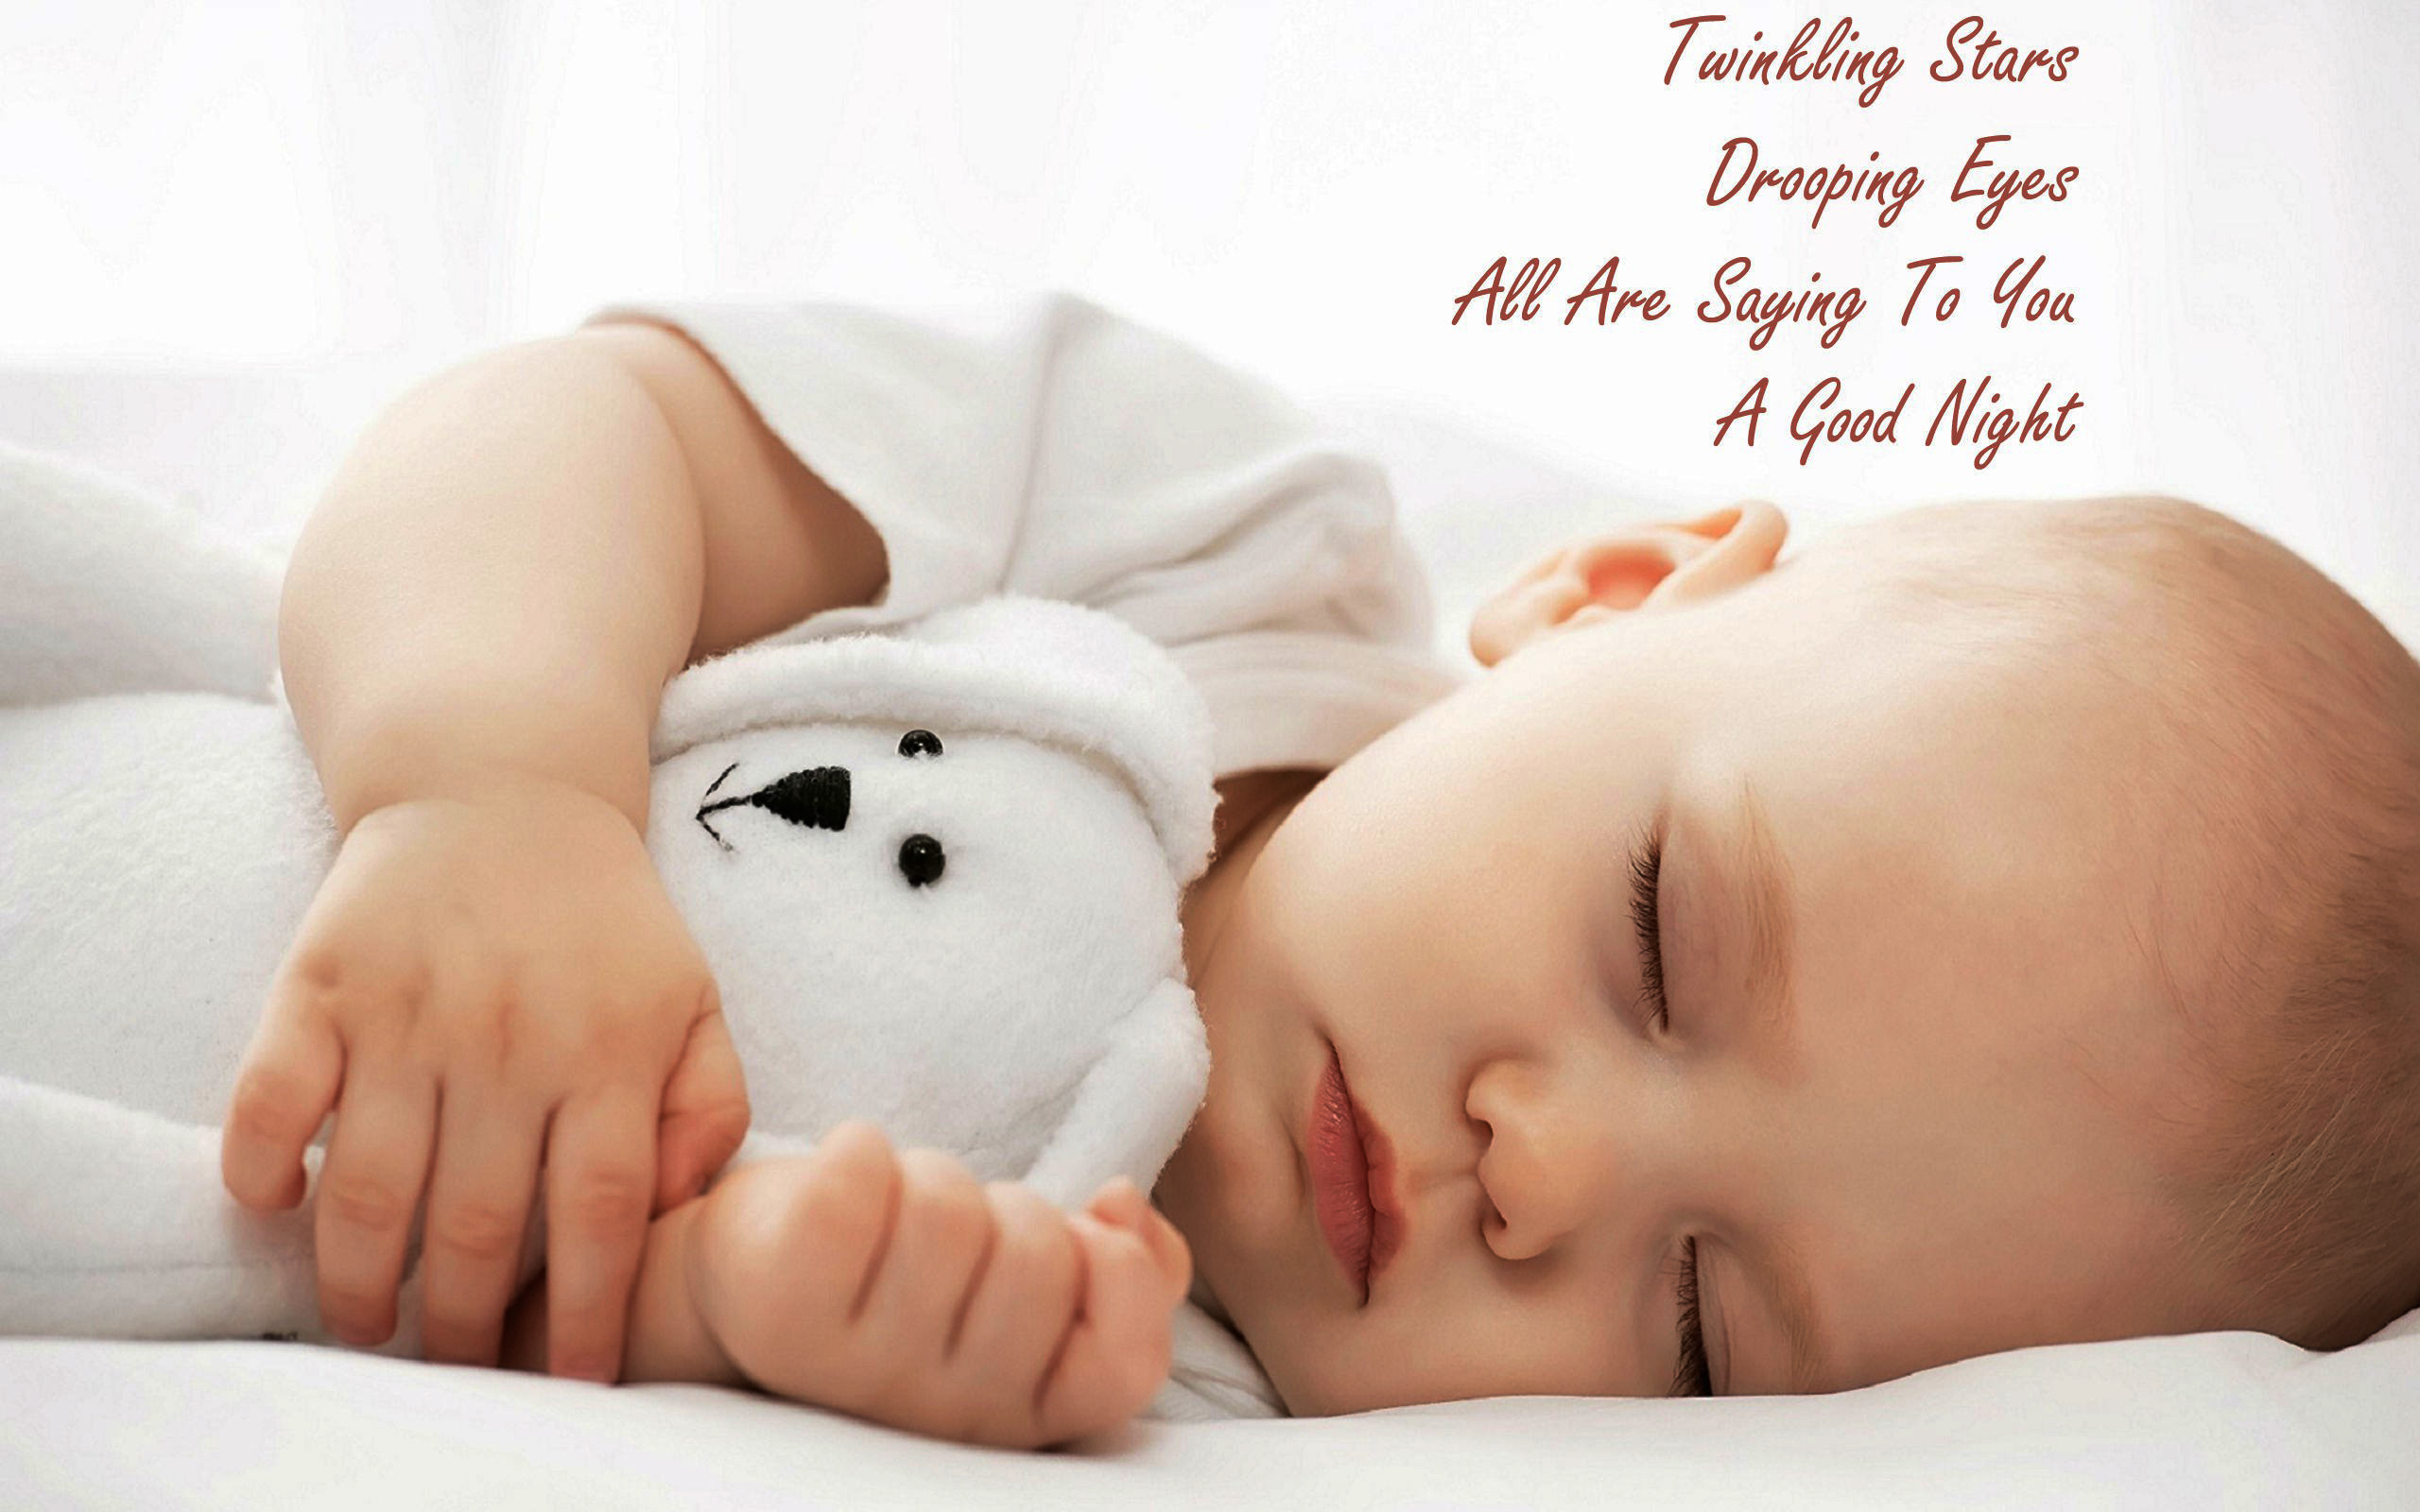 Good Night Baby Hd Wallpaper Sleep For Physical Health 2560x1600 Download Hd Wallpaper Wallpapertip